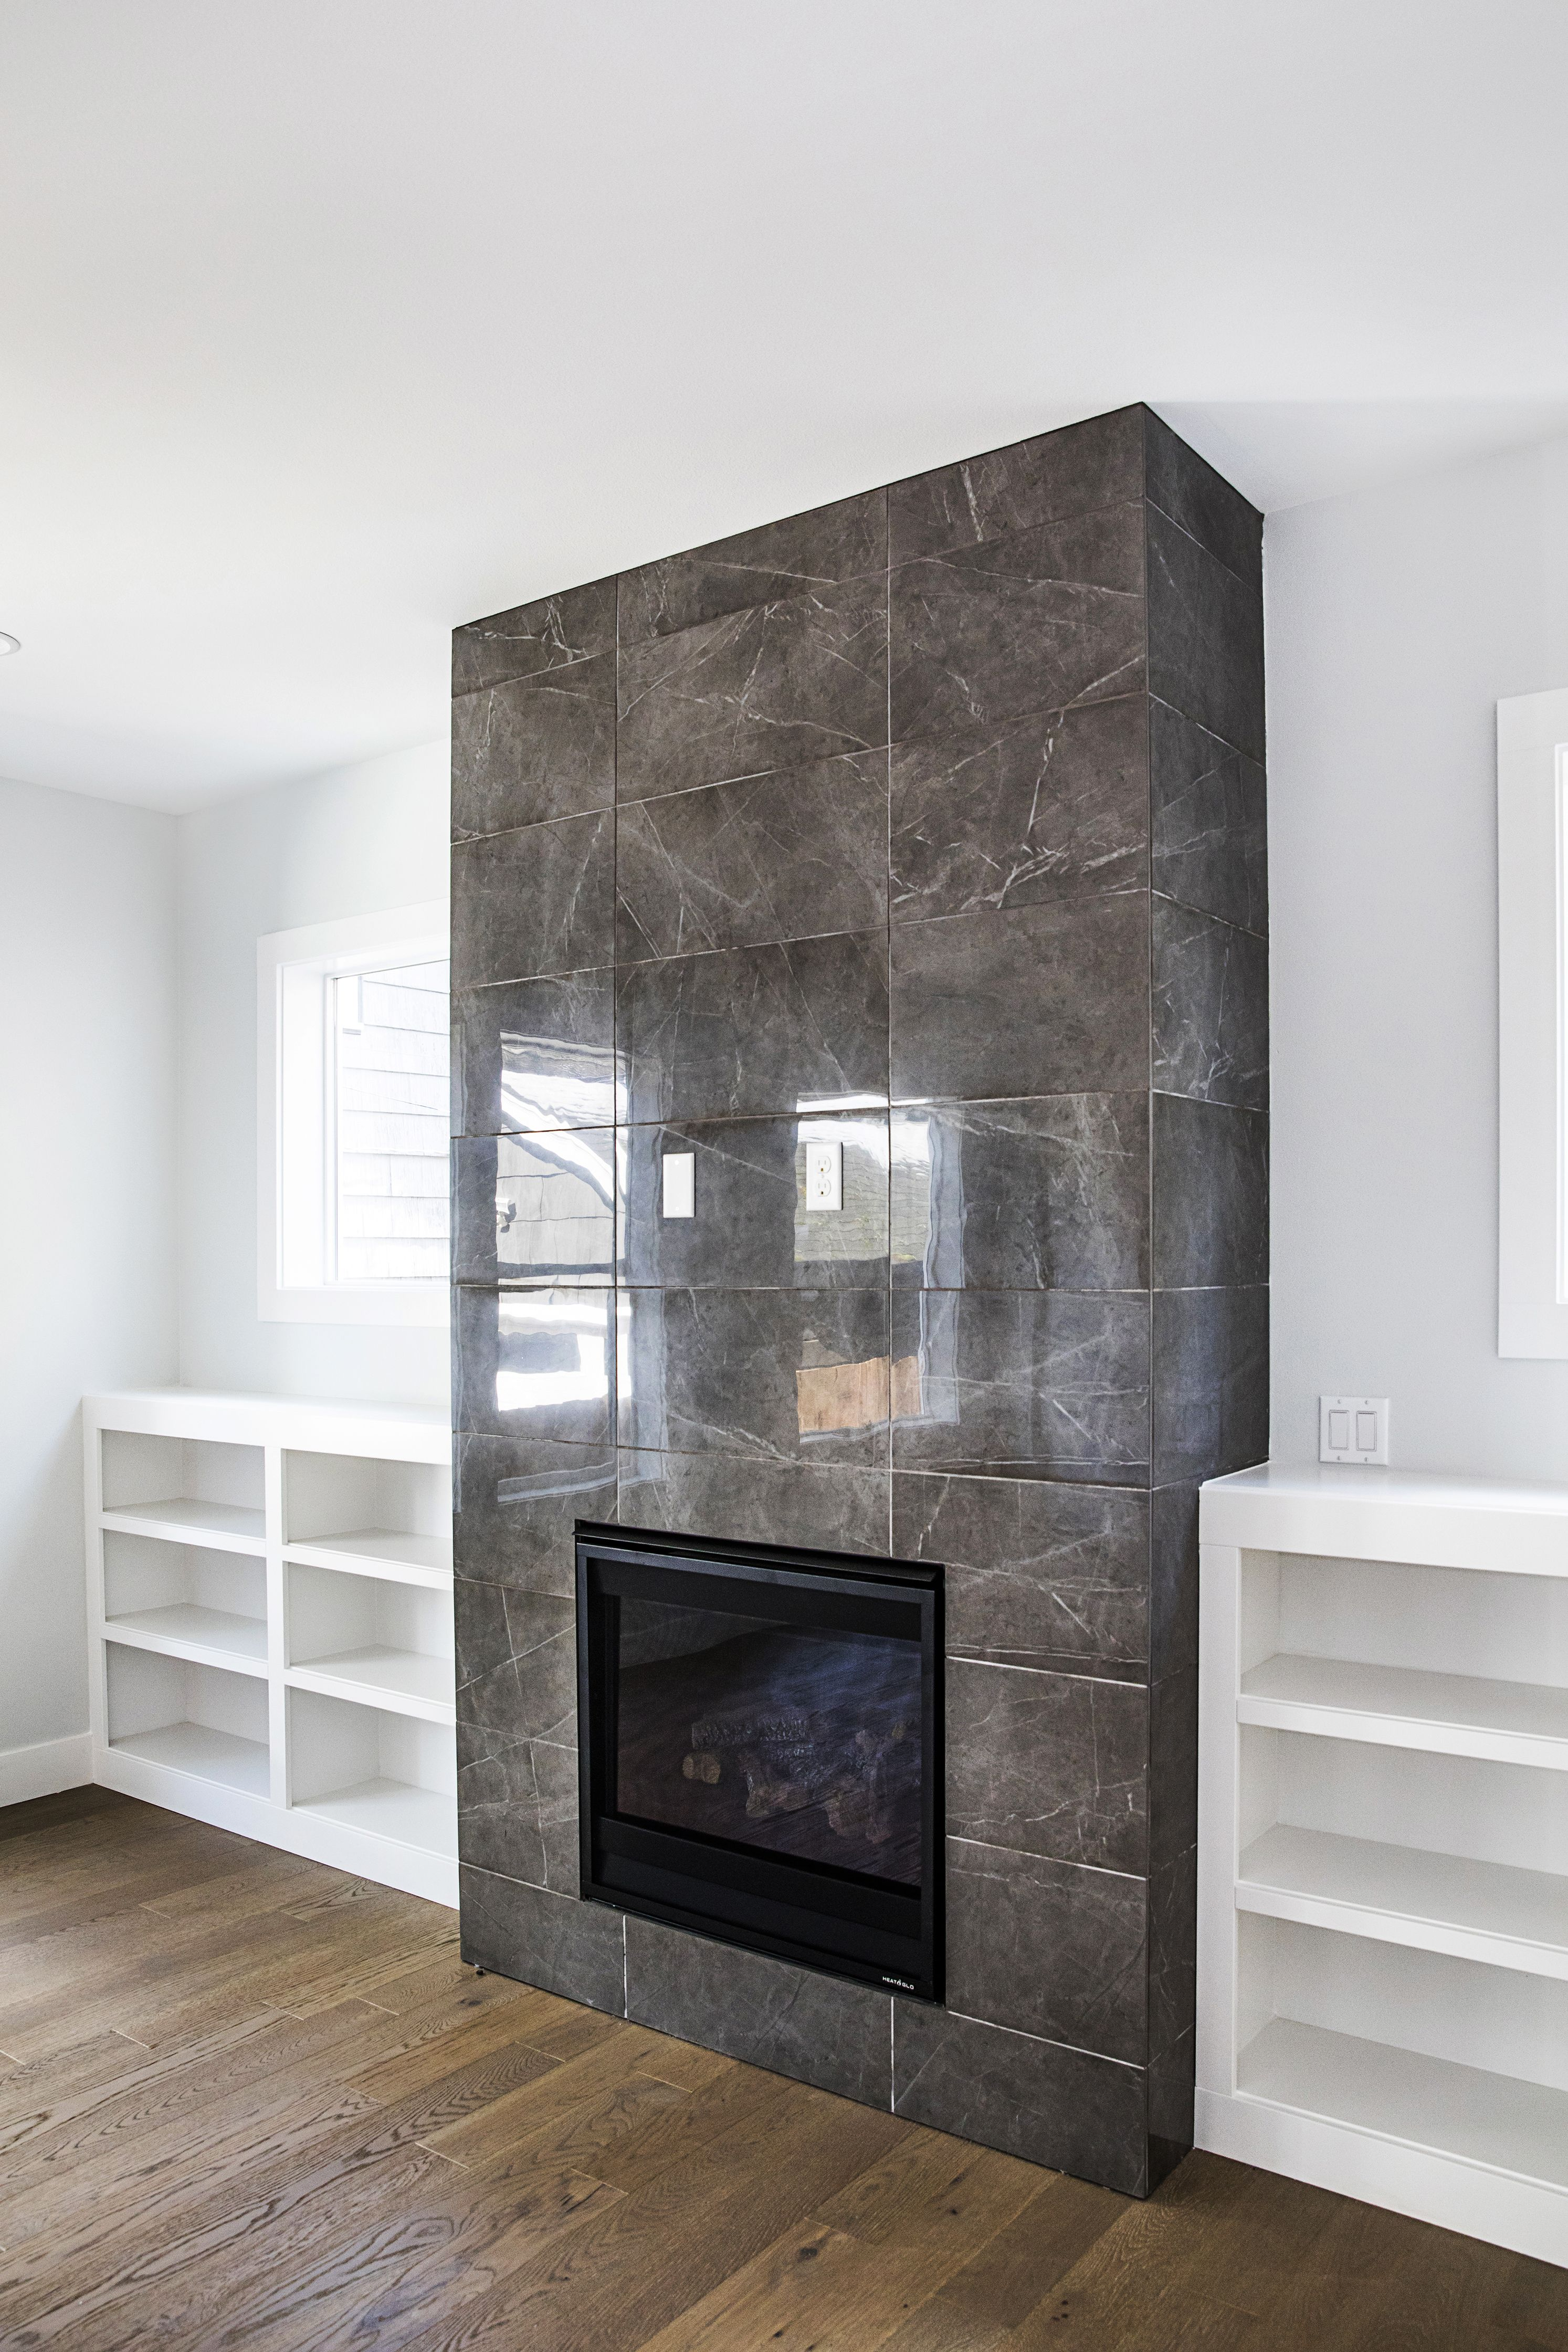 Cost to Remove Fireplace Awesome 12x24 Porcelain Tile On Fireplace Wall Clean and Price